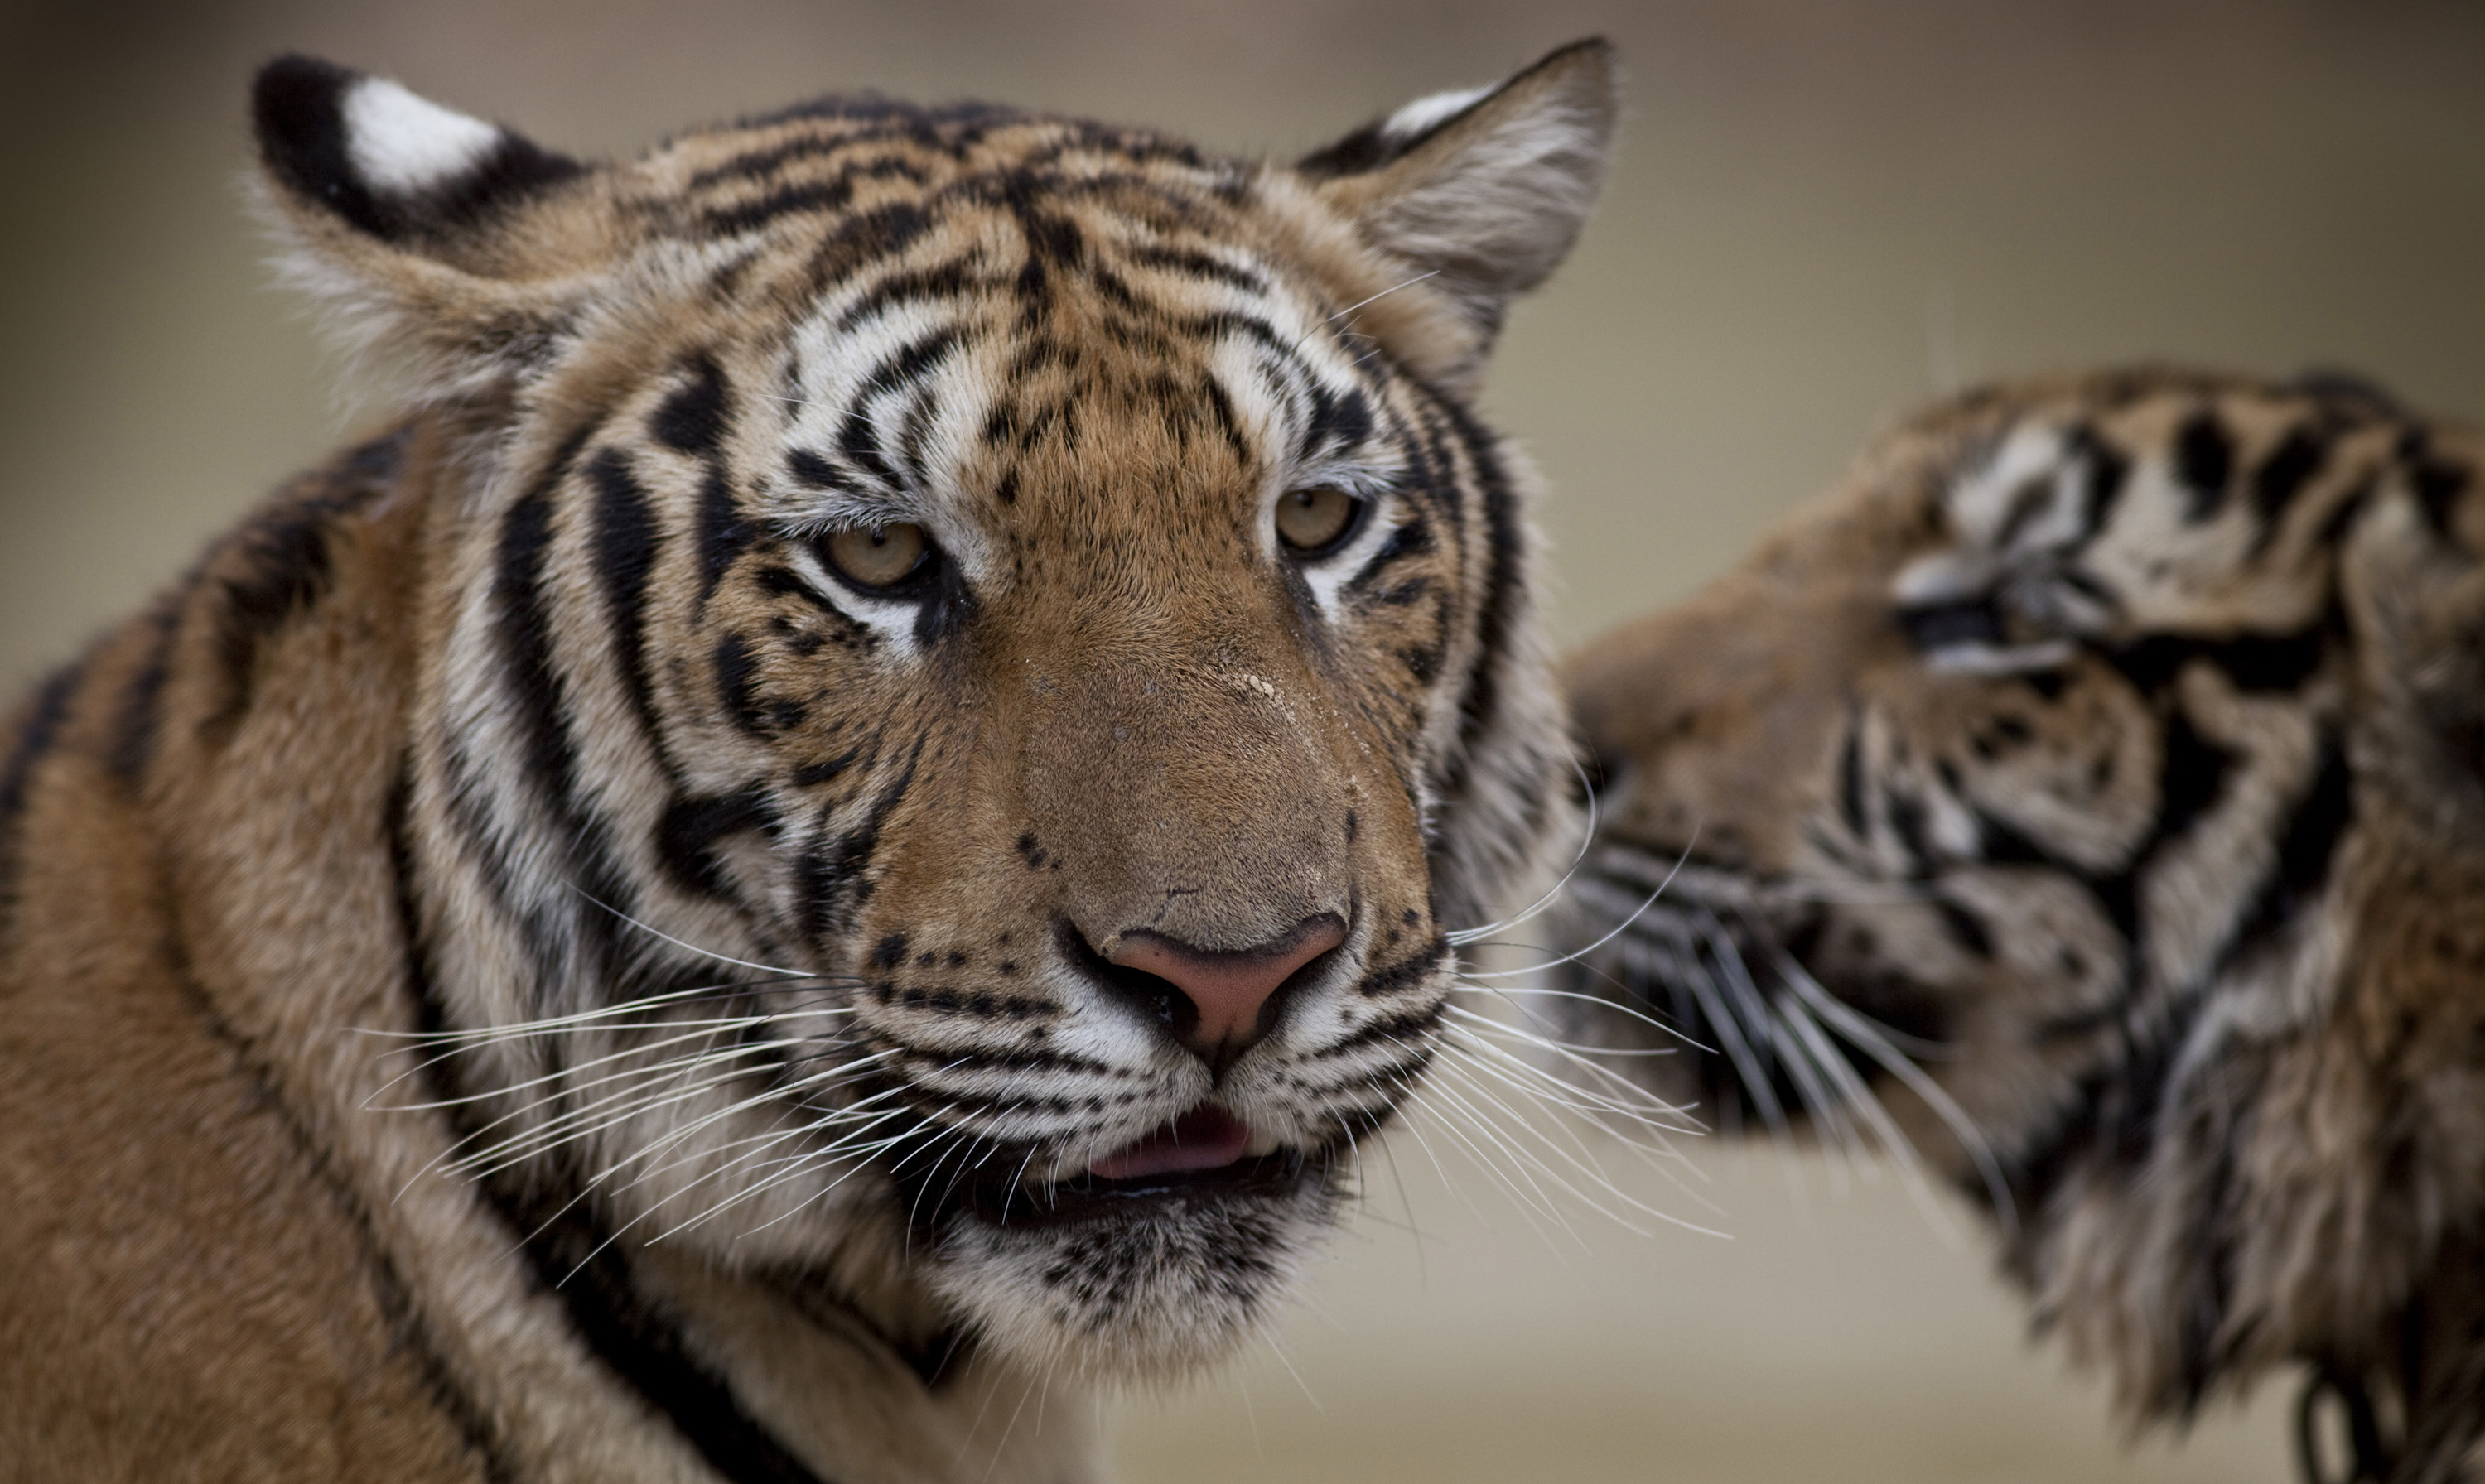 Two adult male tigers look on at Wat Pa Luangta Bua Yannasampanno Forest Monastery in Kanchanaburi, Thailand are shown in this photo taken Jan. 20.